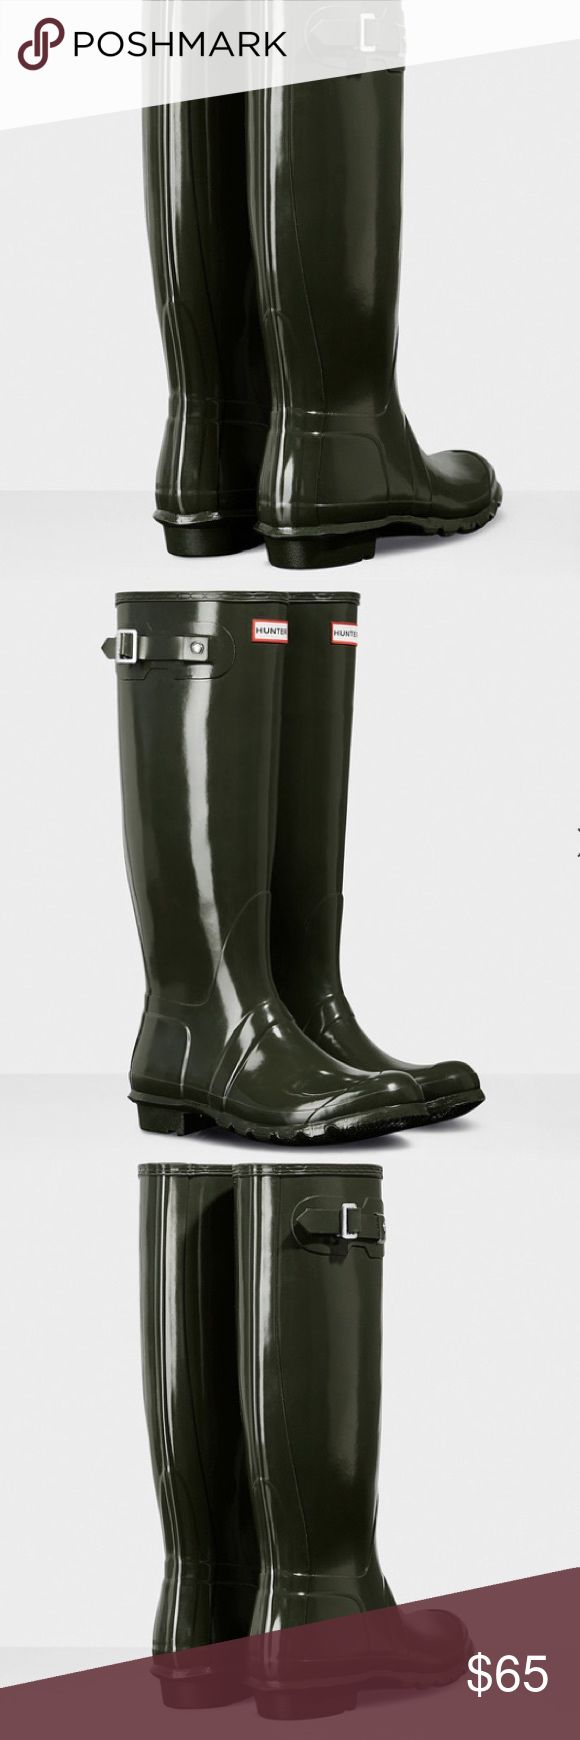 Hunter Boots size 6,7,8 On sale now. $65. Rubber soles. They are new with tags. Hunter Shoes Winter & Rain Boots